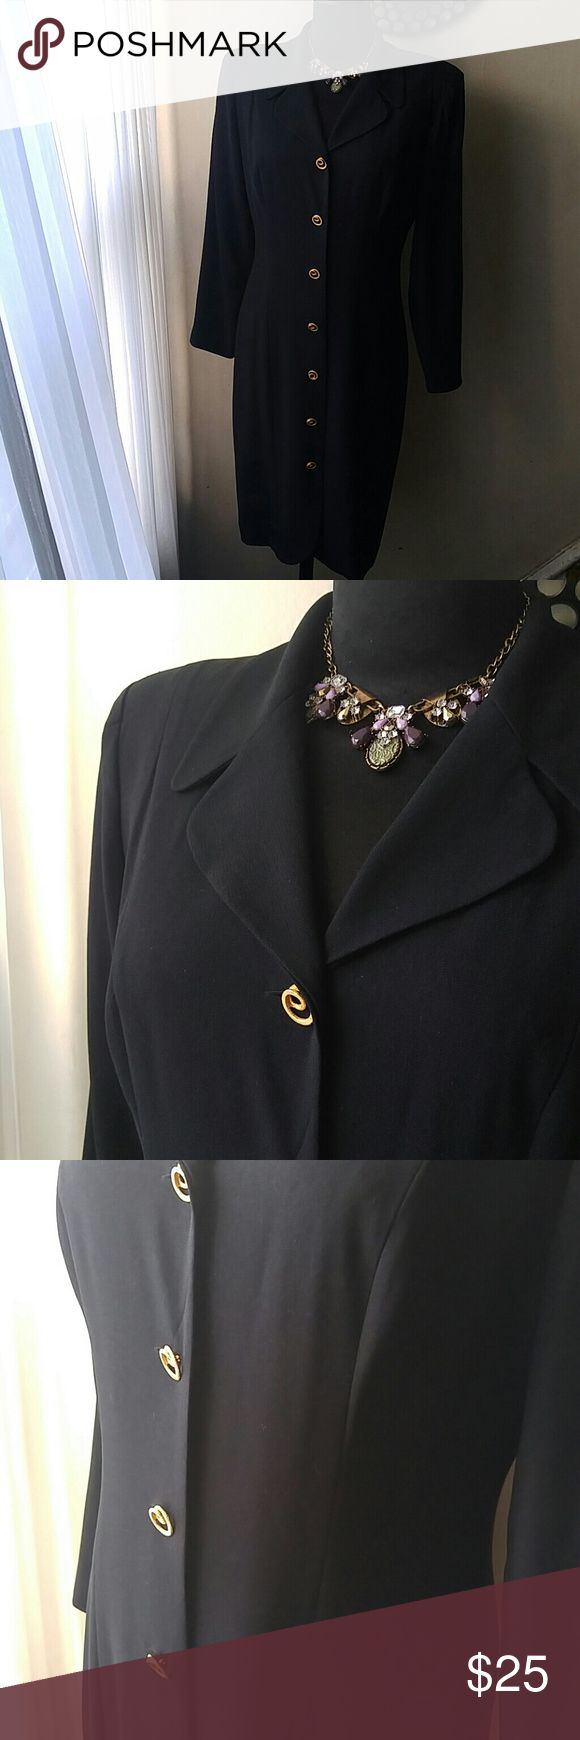 "Stunning Liz Claiborne "" I mean Business Dress"" Excellent condition. This classic, iconic sillouhette will surely deliver compliments your way. Crepe material provides the perfect drape. Goldtone swirl buttons makes this cute pop. Lightly padded shoulder pads creat structure. Fully lined, inverted pleated pleat(very chic touch) Please note: 21 inches pit to pit, 18.25 waist, 22.5 hip, 41.5 length, sleeve 24 inches, 17.5 all measurements were taken laying flat. Liz Claiborne Dresses"